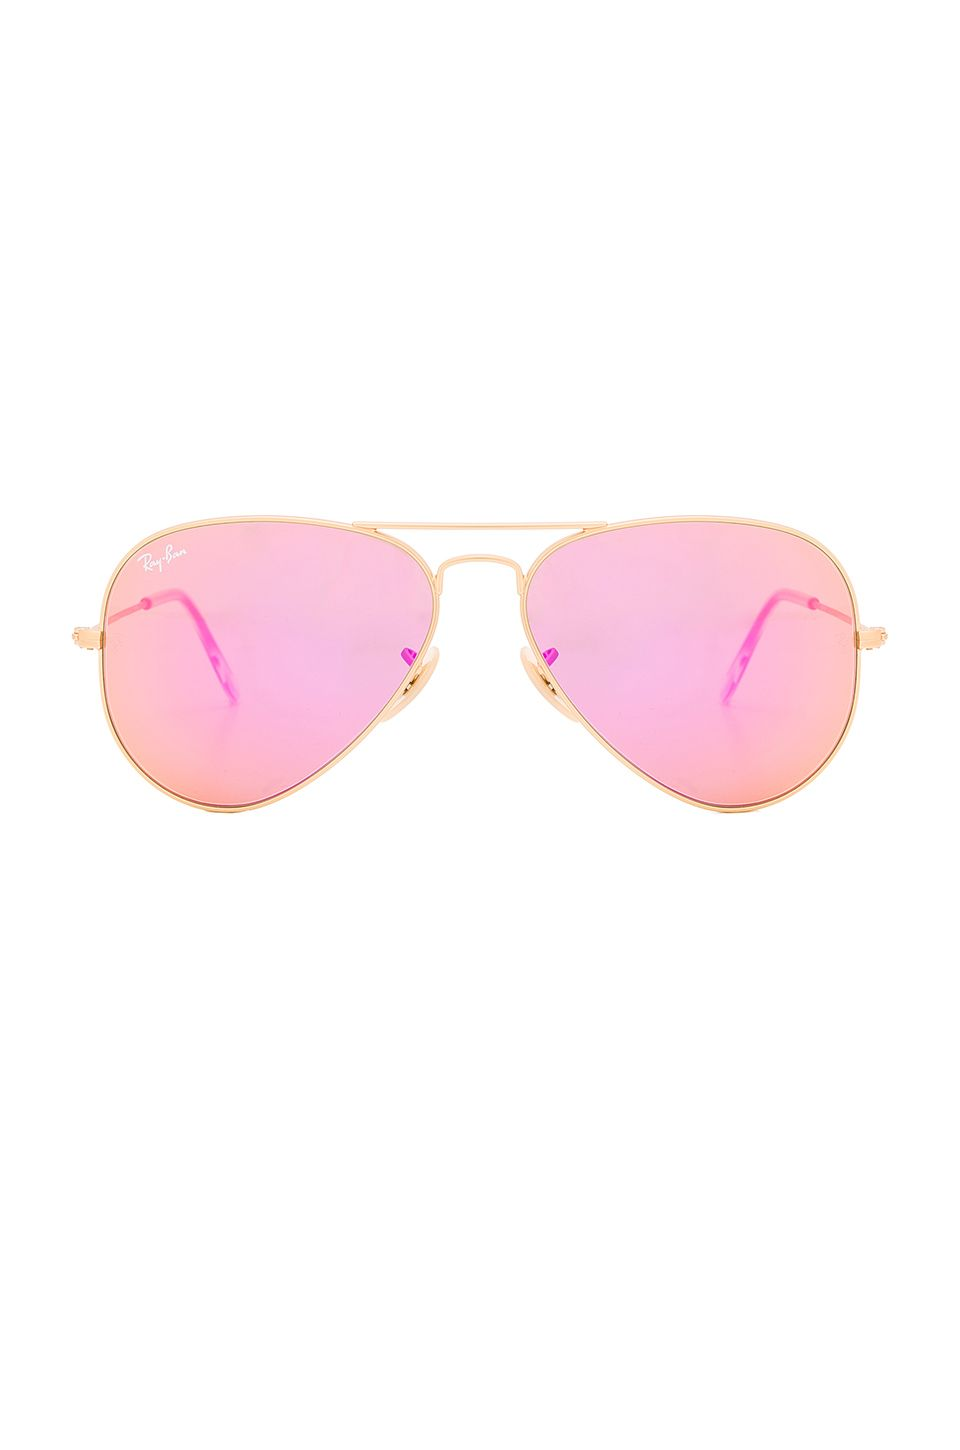 Ray-Ban Aviator Flash Lenses in Gold   Cyclamen Mirror  170  a62314a404